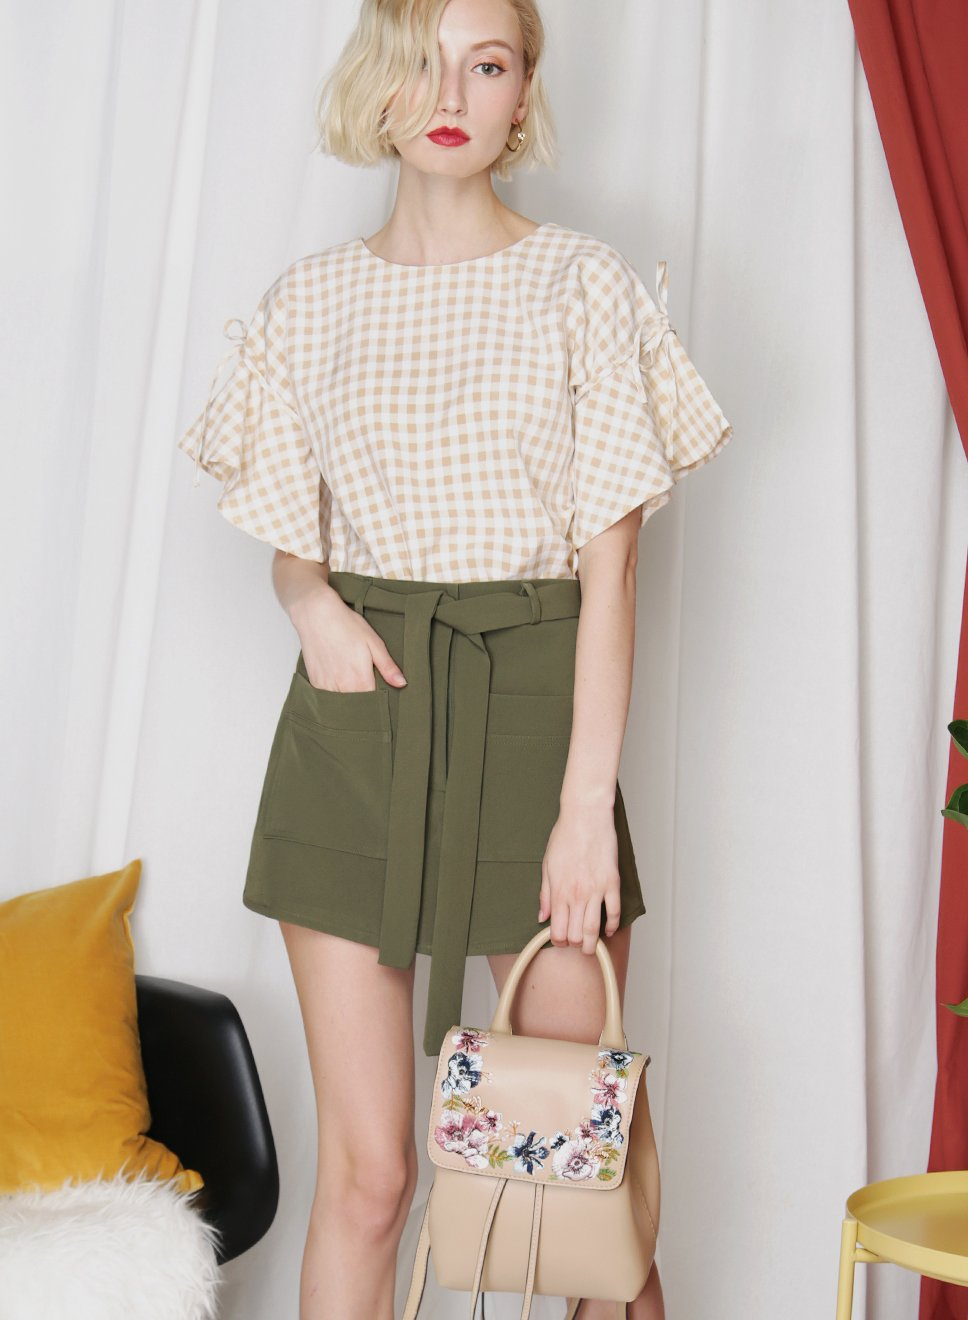 MUSE Gingham Ruffle Top (Oat) at $ 34.50 only sold at And Well Dressed Online Fashion Store Singapore